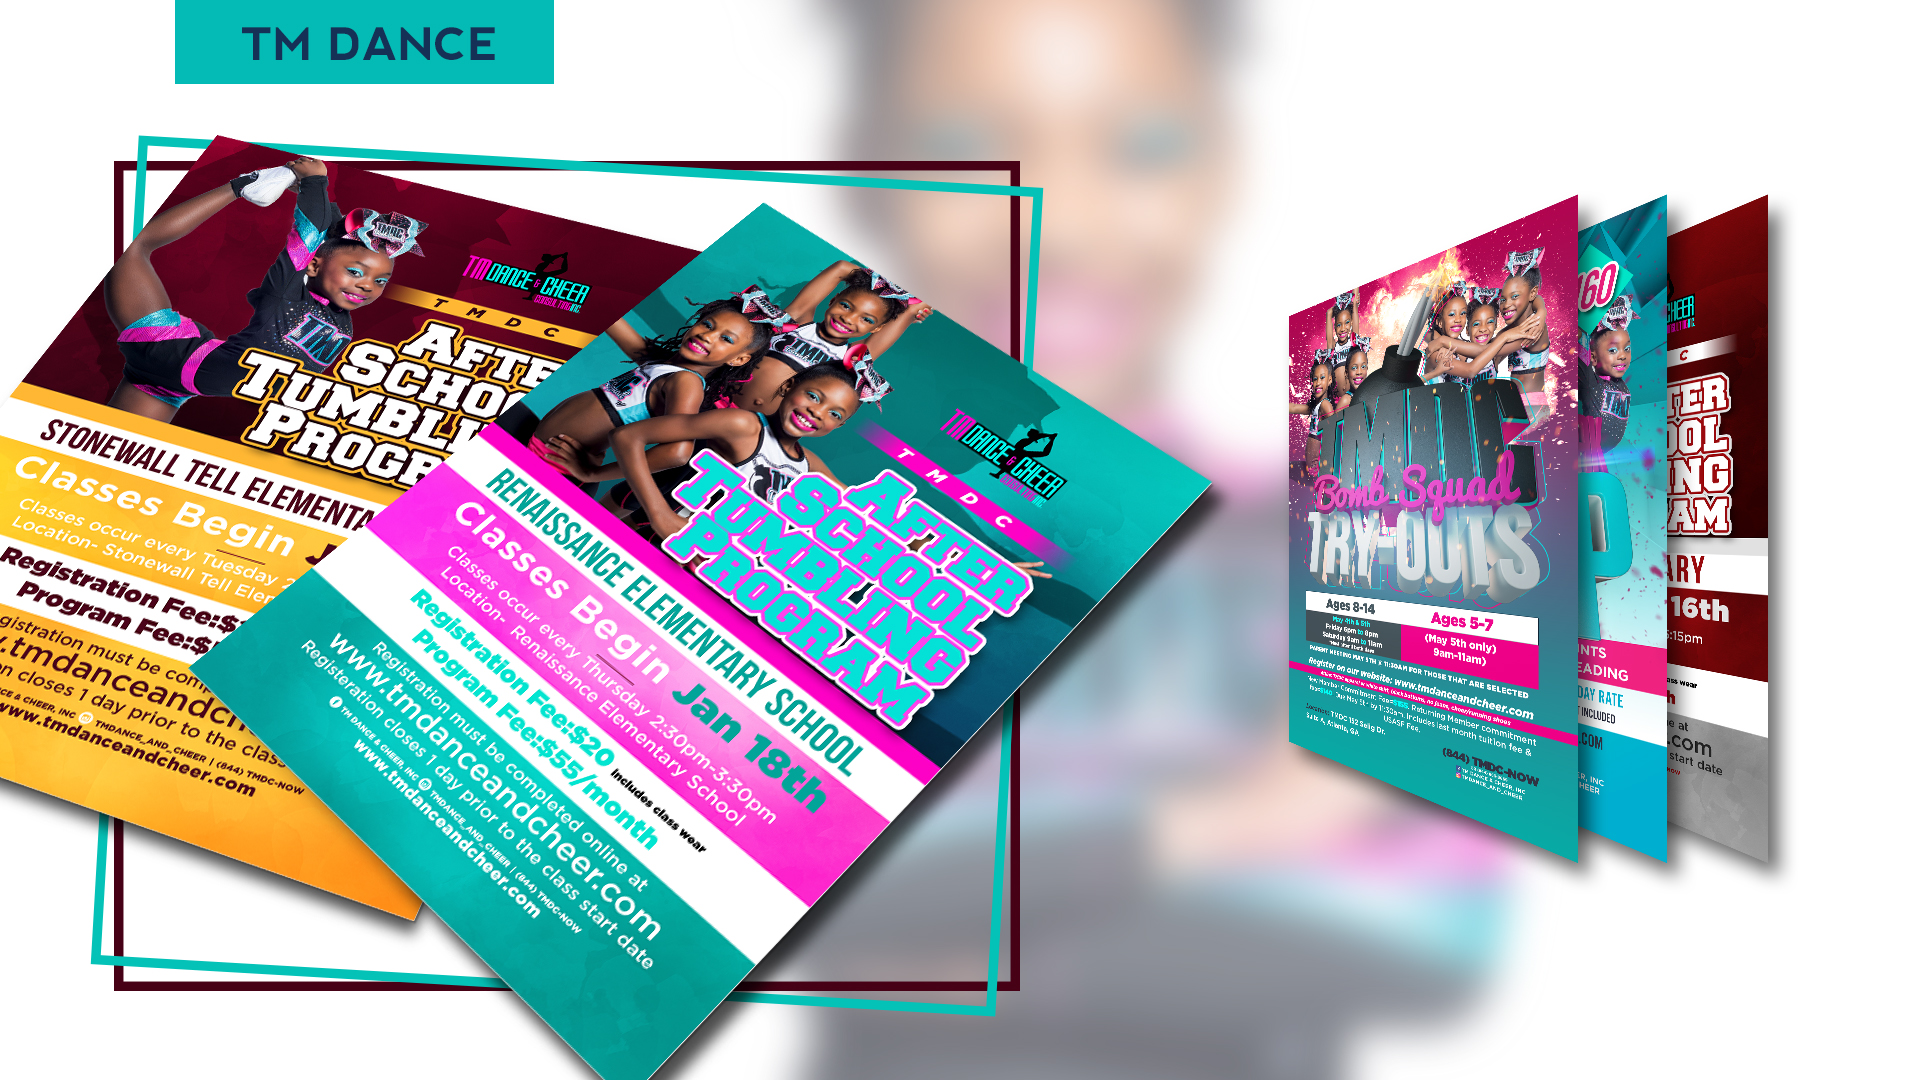 Flyer Image Placement_tmdc.jpg